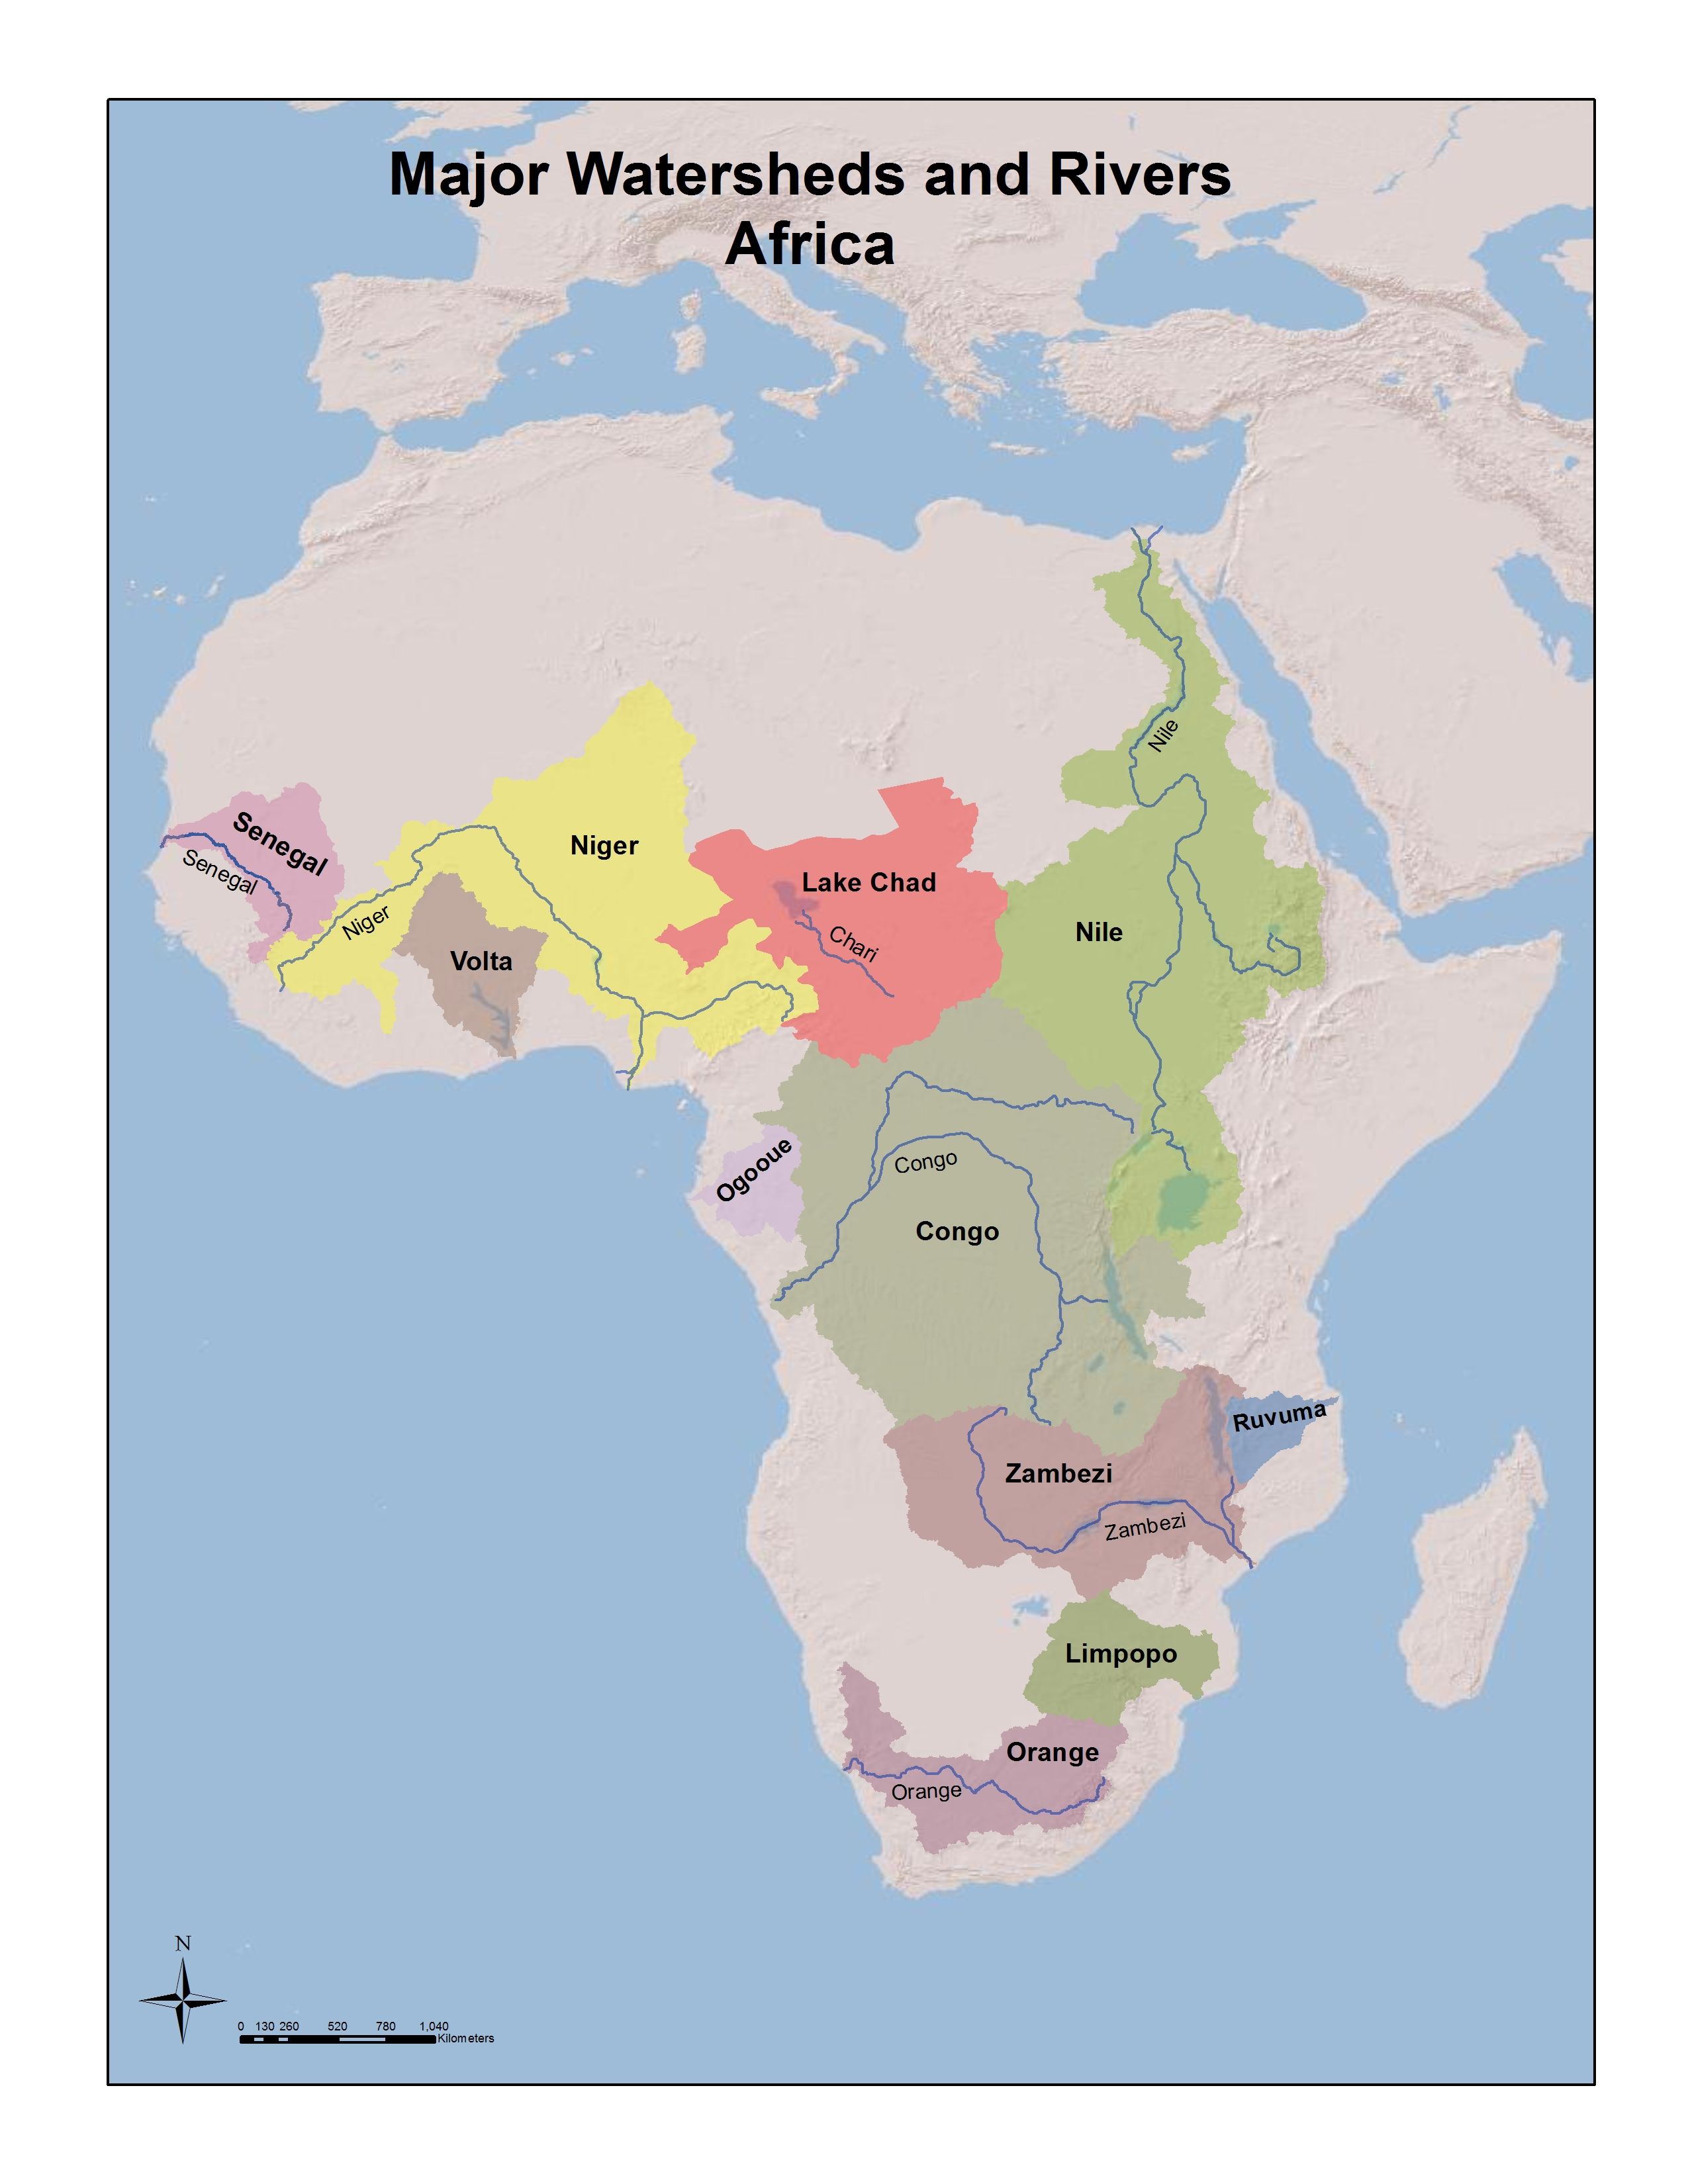 Hydrology and world history rivers and watersheds for students map of the major watersheds and rivers in africa courtesy of the university of pittsburgh library system map collection click on the image to see a larger gumiabroncs Choice Image